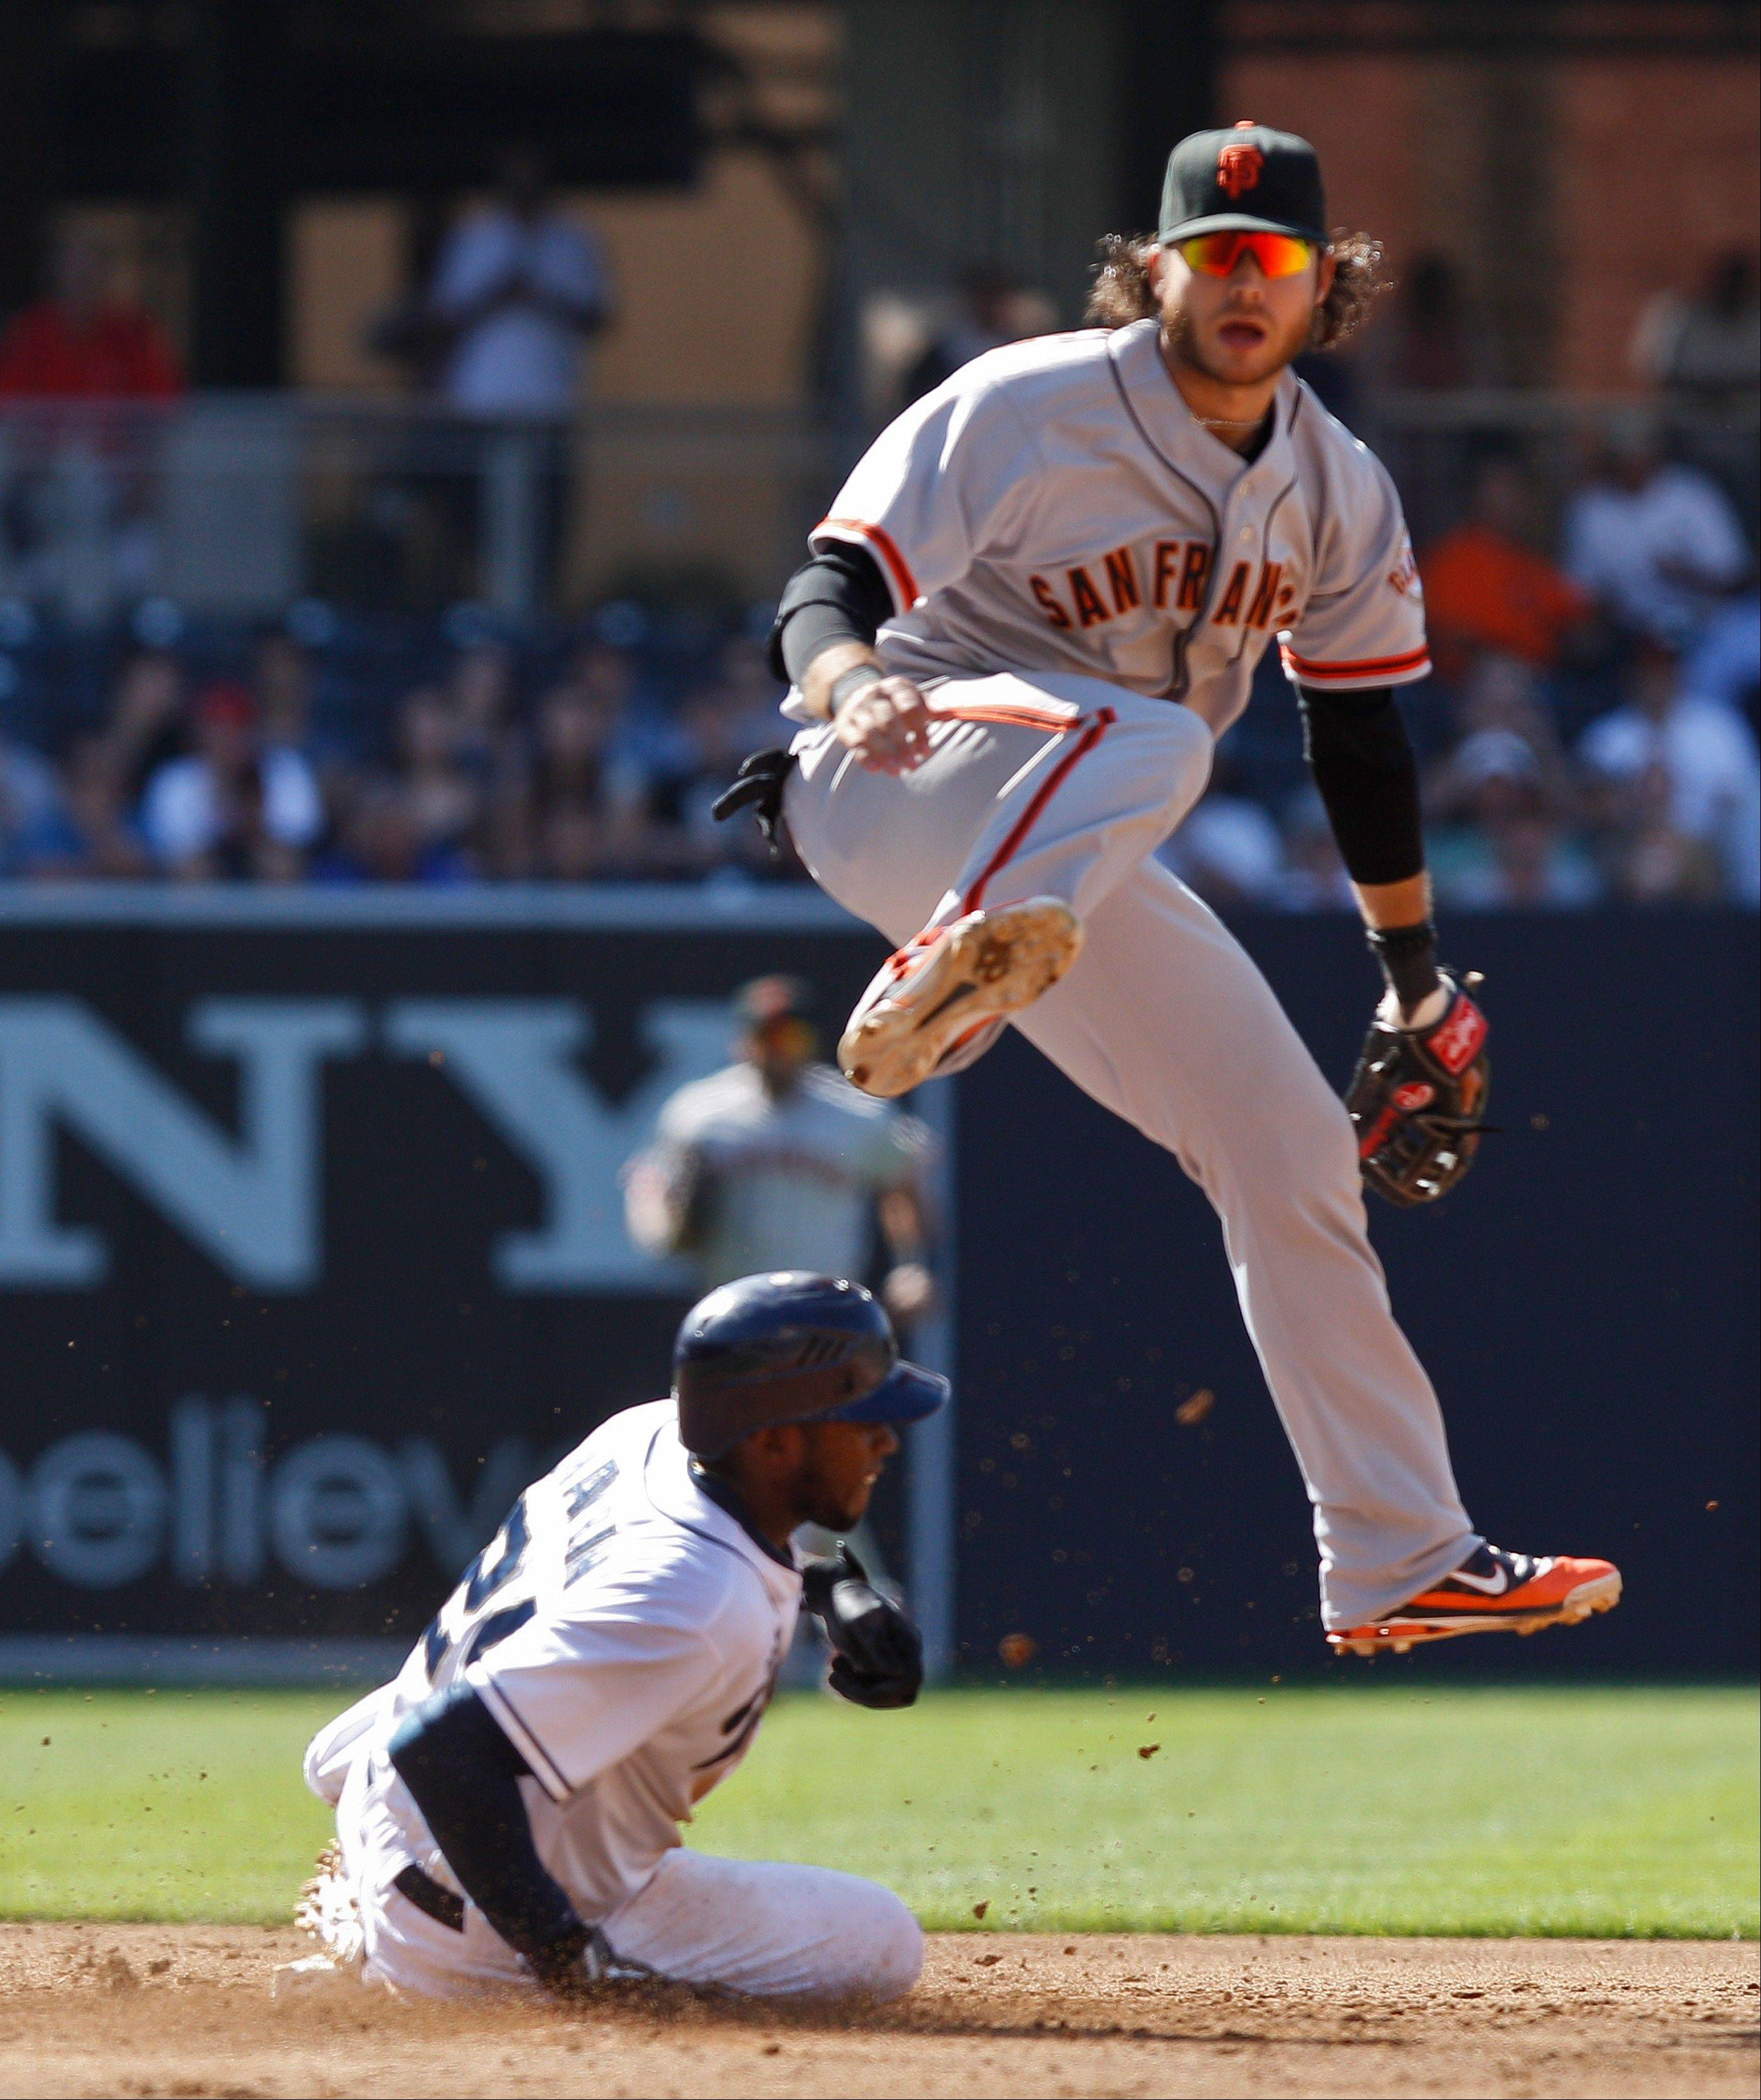 San Francisco Giants shortstop Brandon Crawford hurdles the San Diego Padres' Cameron Maybin while relaying to first to complete a double play Wednesday during the third inning in San Diego.